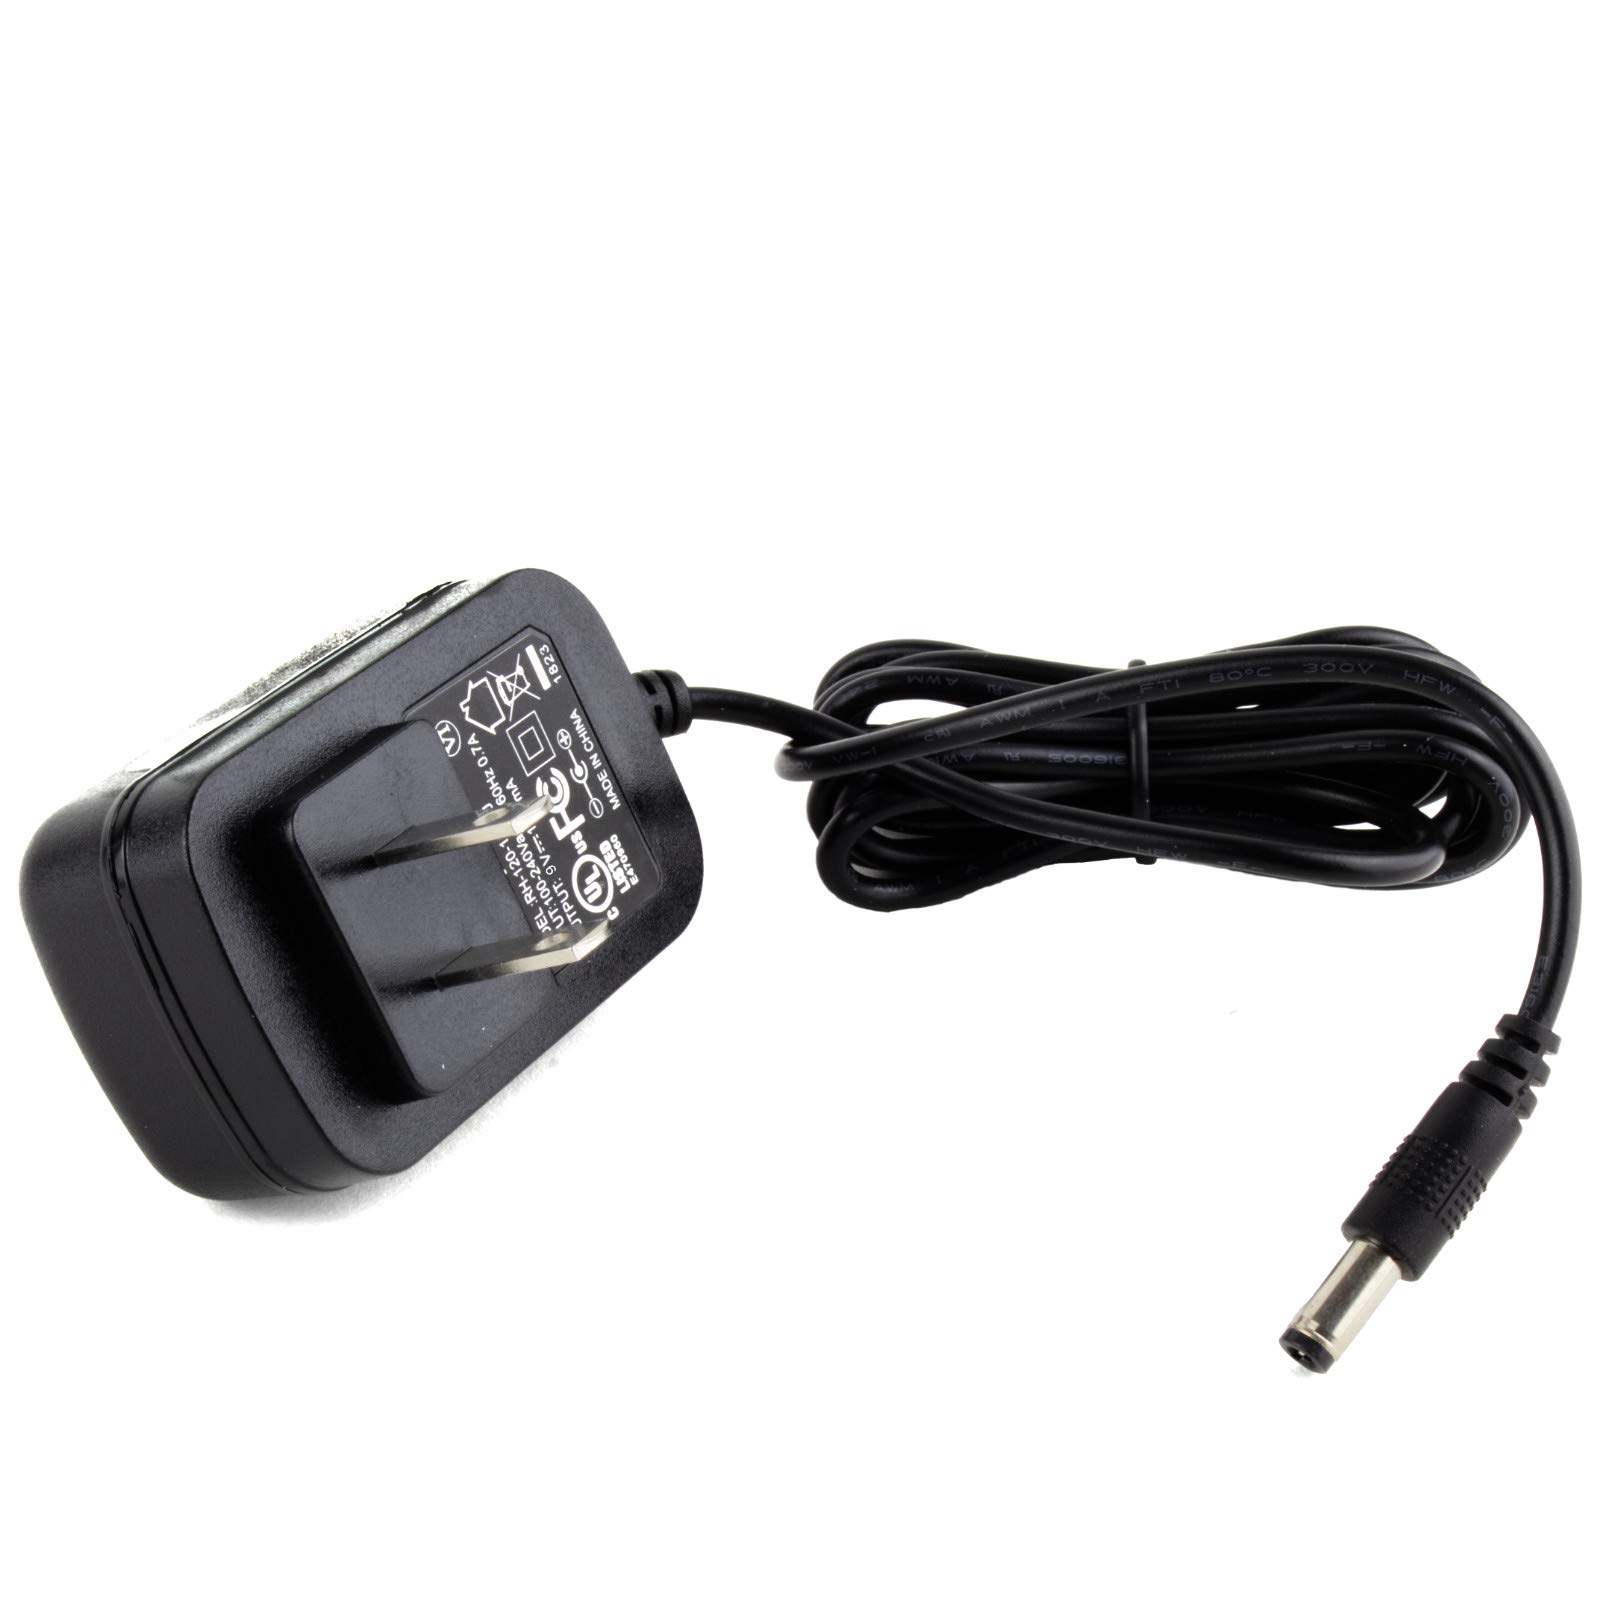 MyVolts 9V Power Supply Adaptor Compatible with Brother PT-1090 Label Printer - US Plug by MyVolts